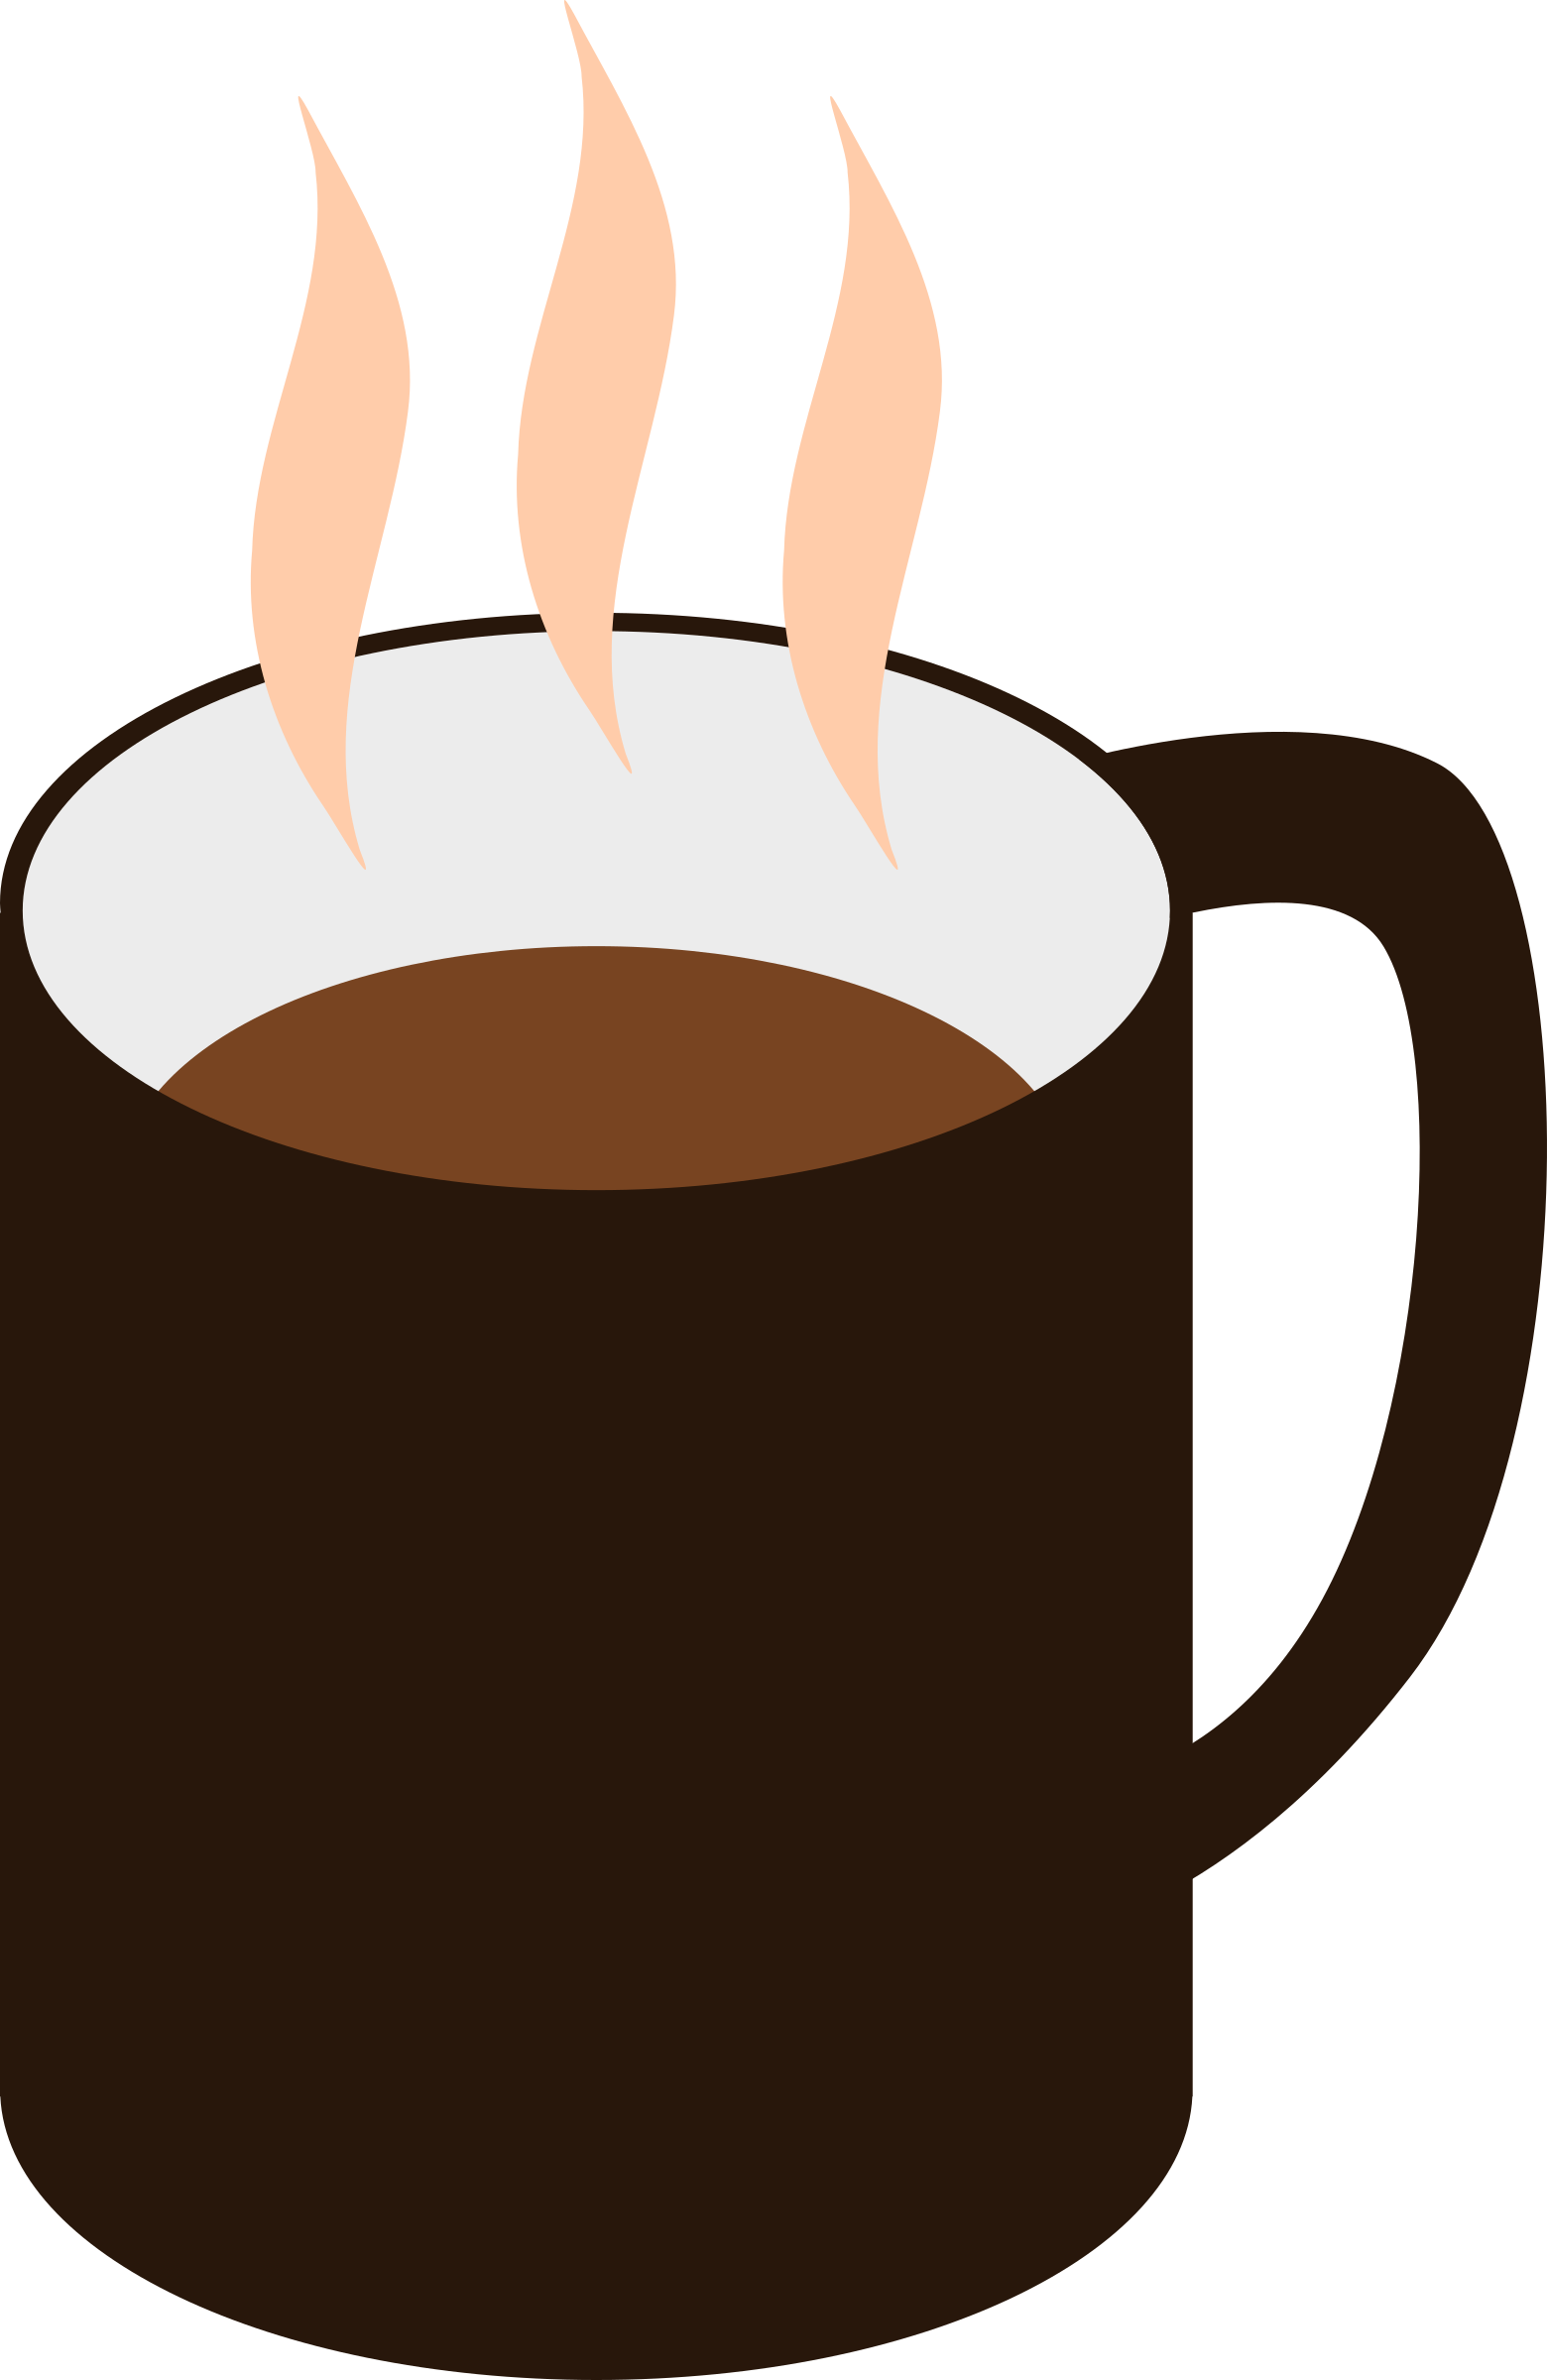 Coffee mug clipart png. Collection of high